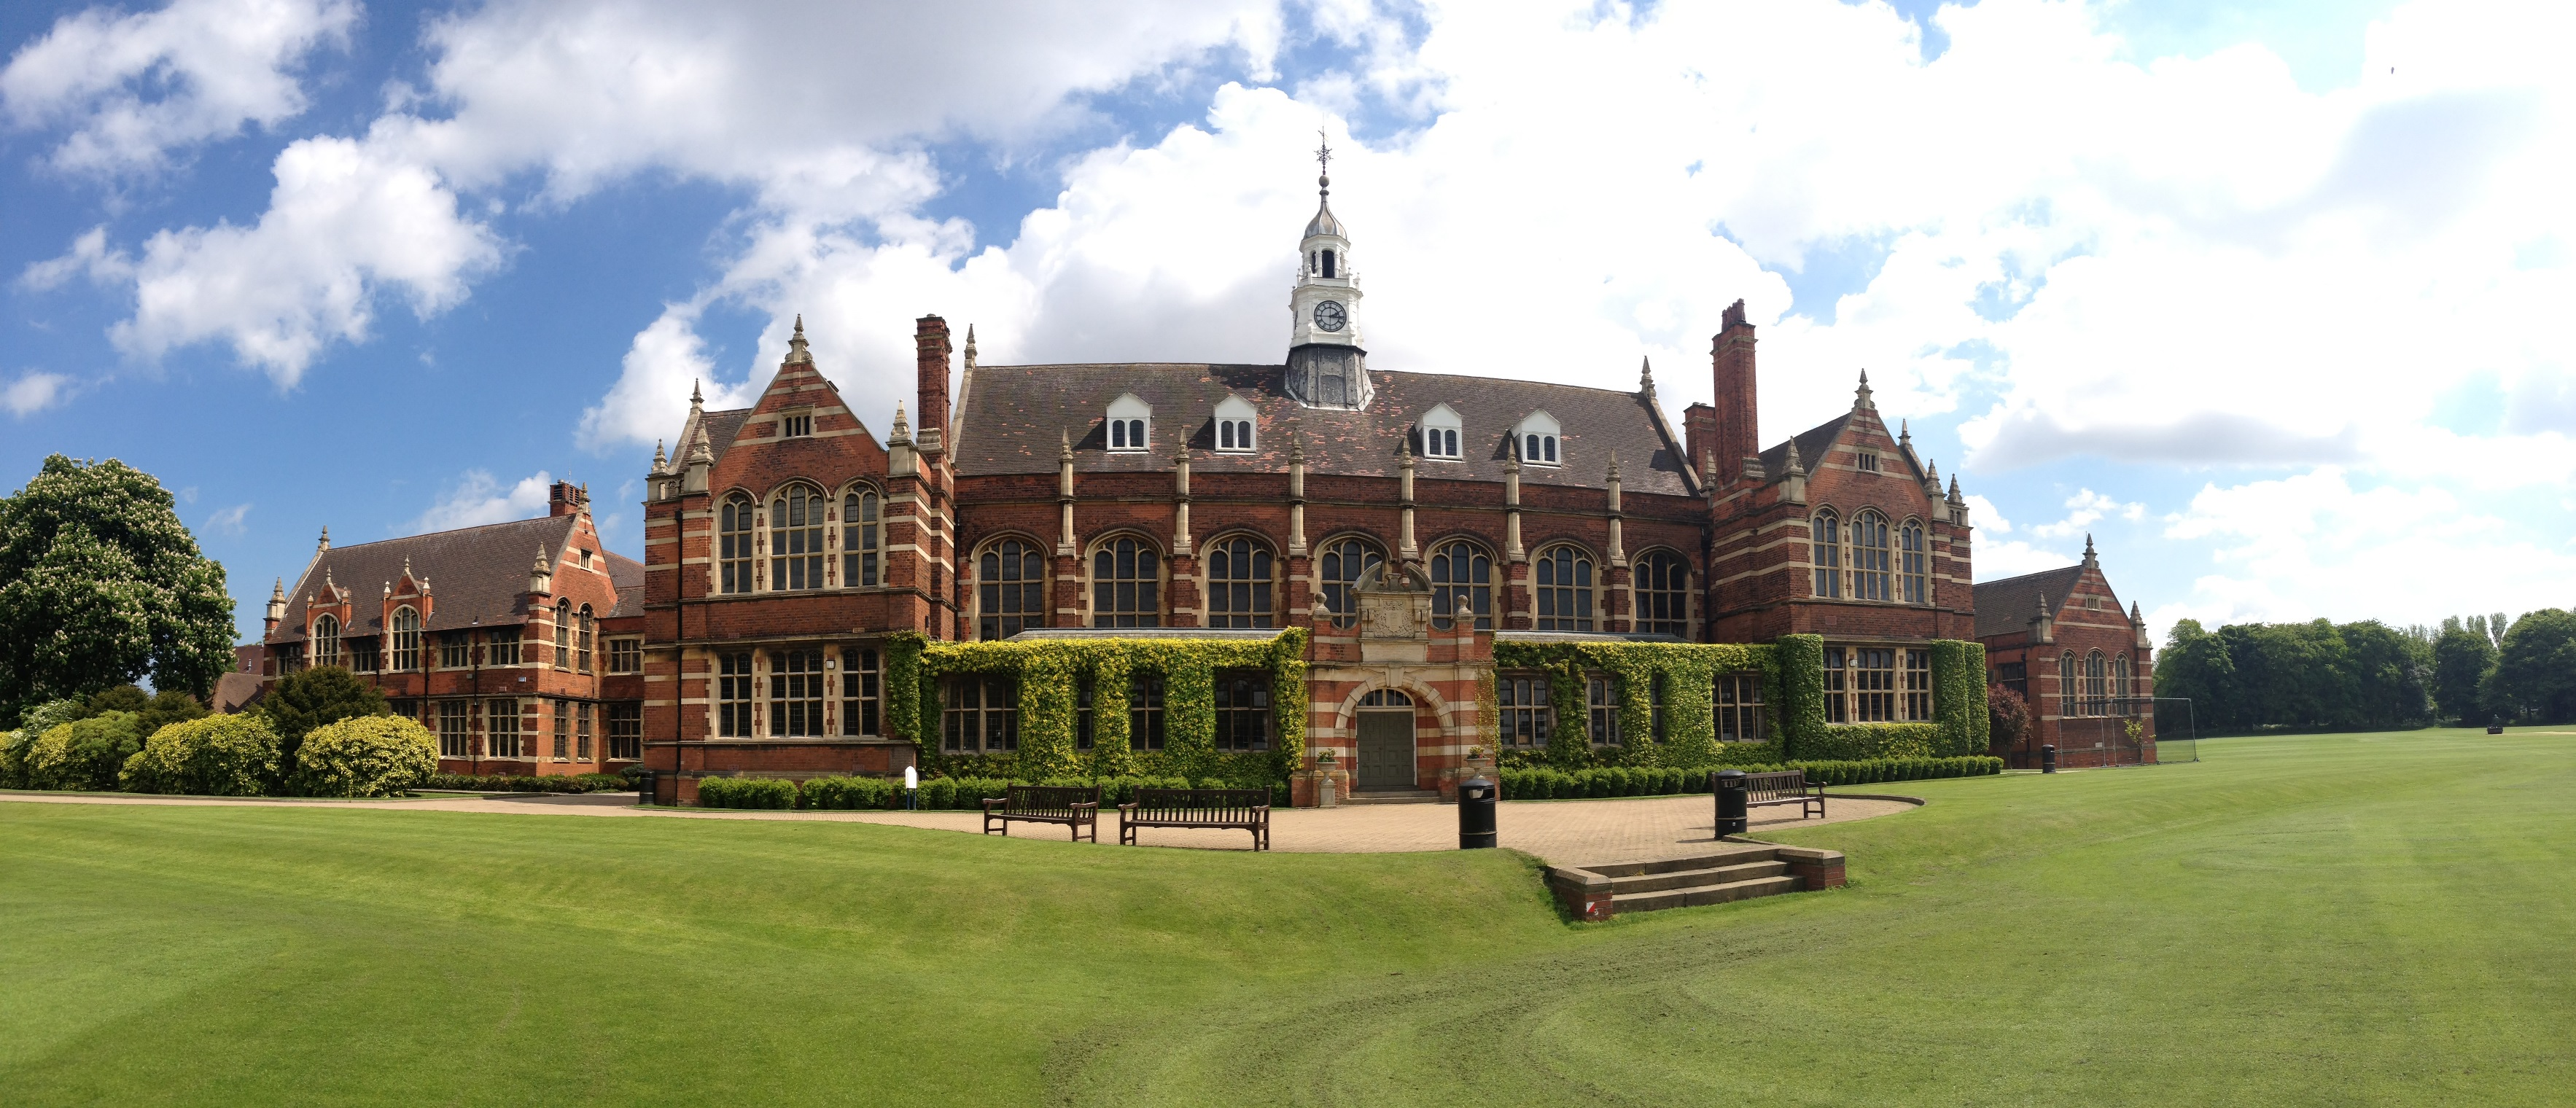 Hull Hymers College